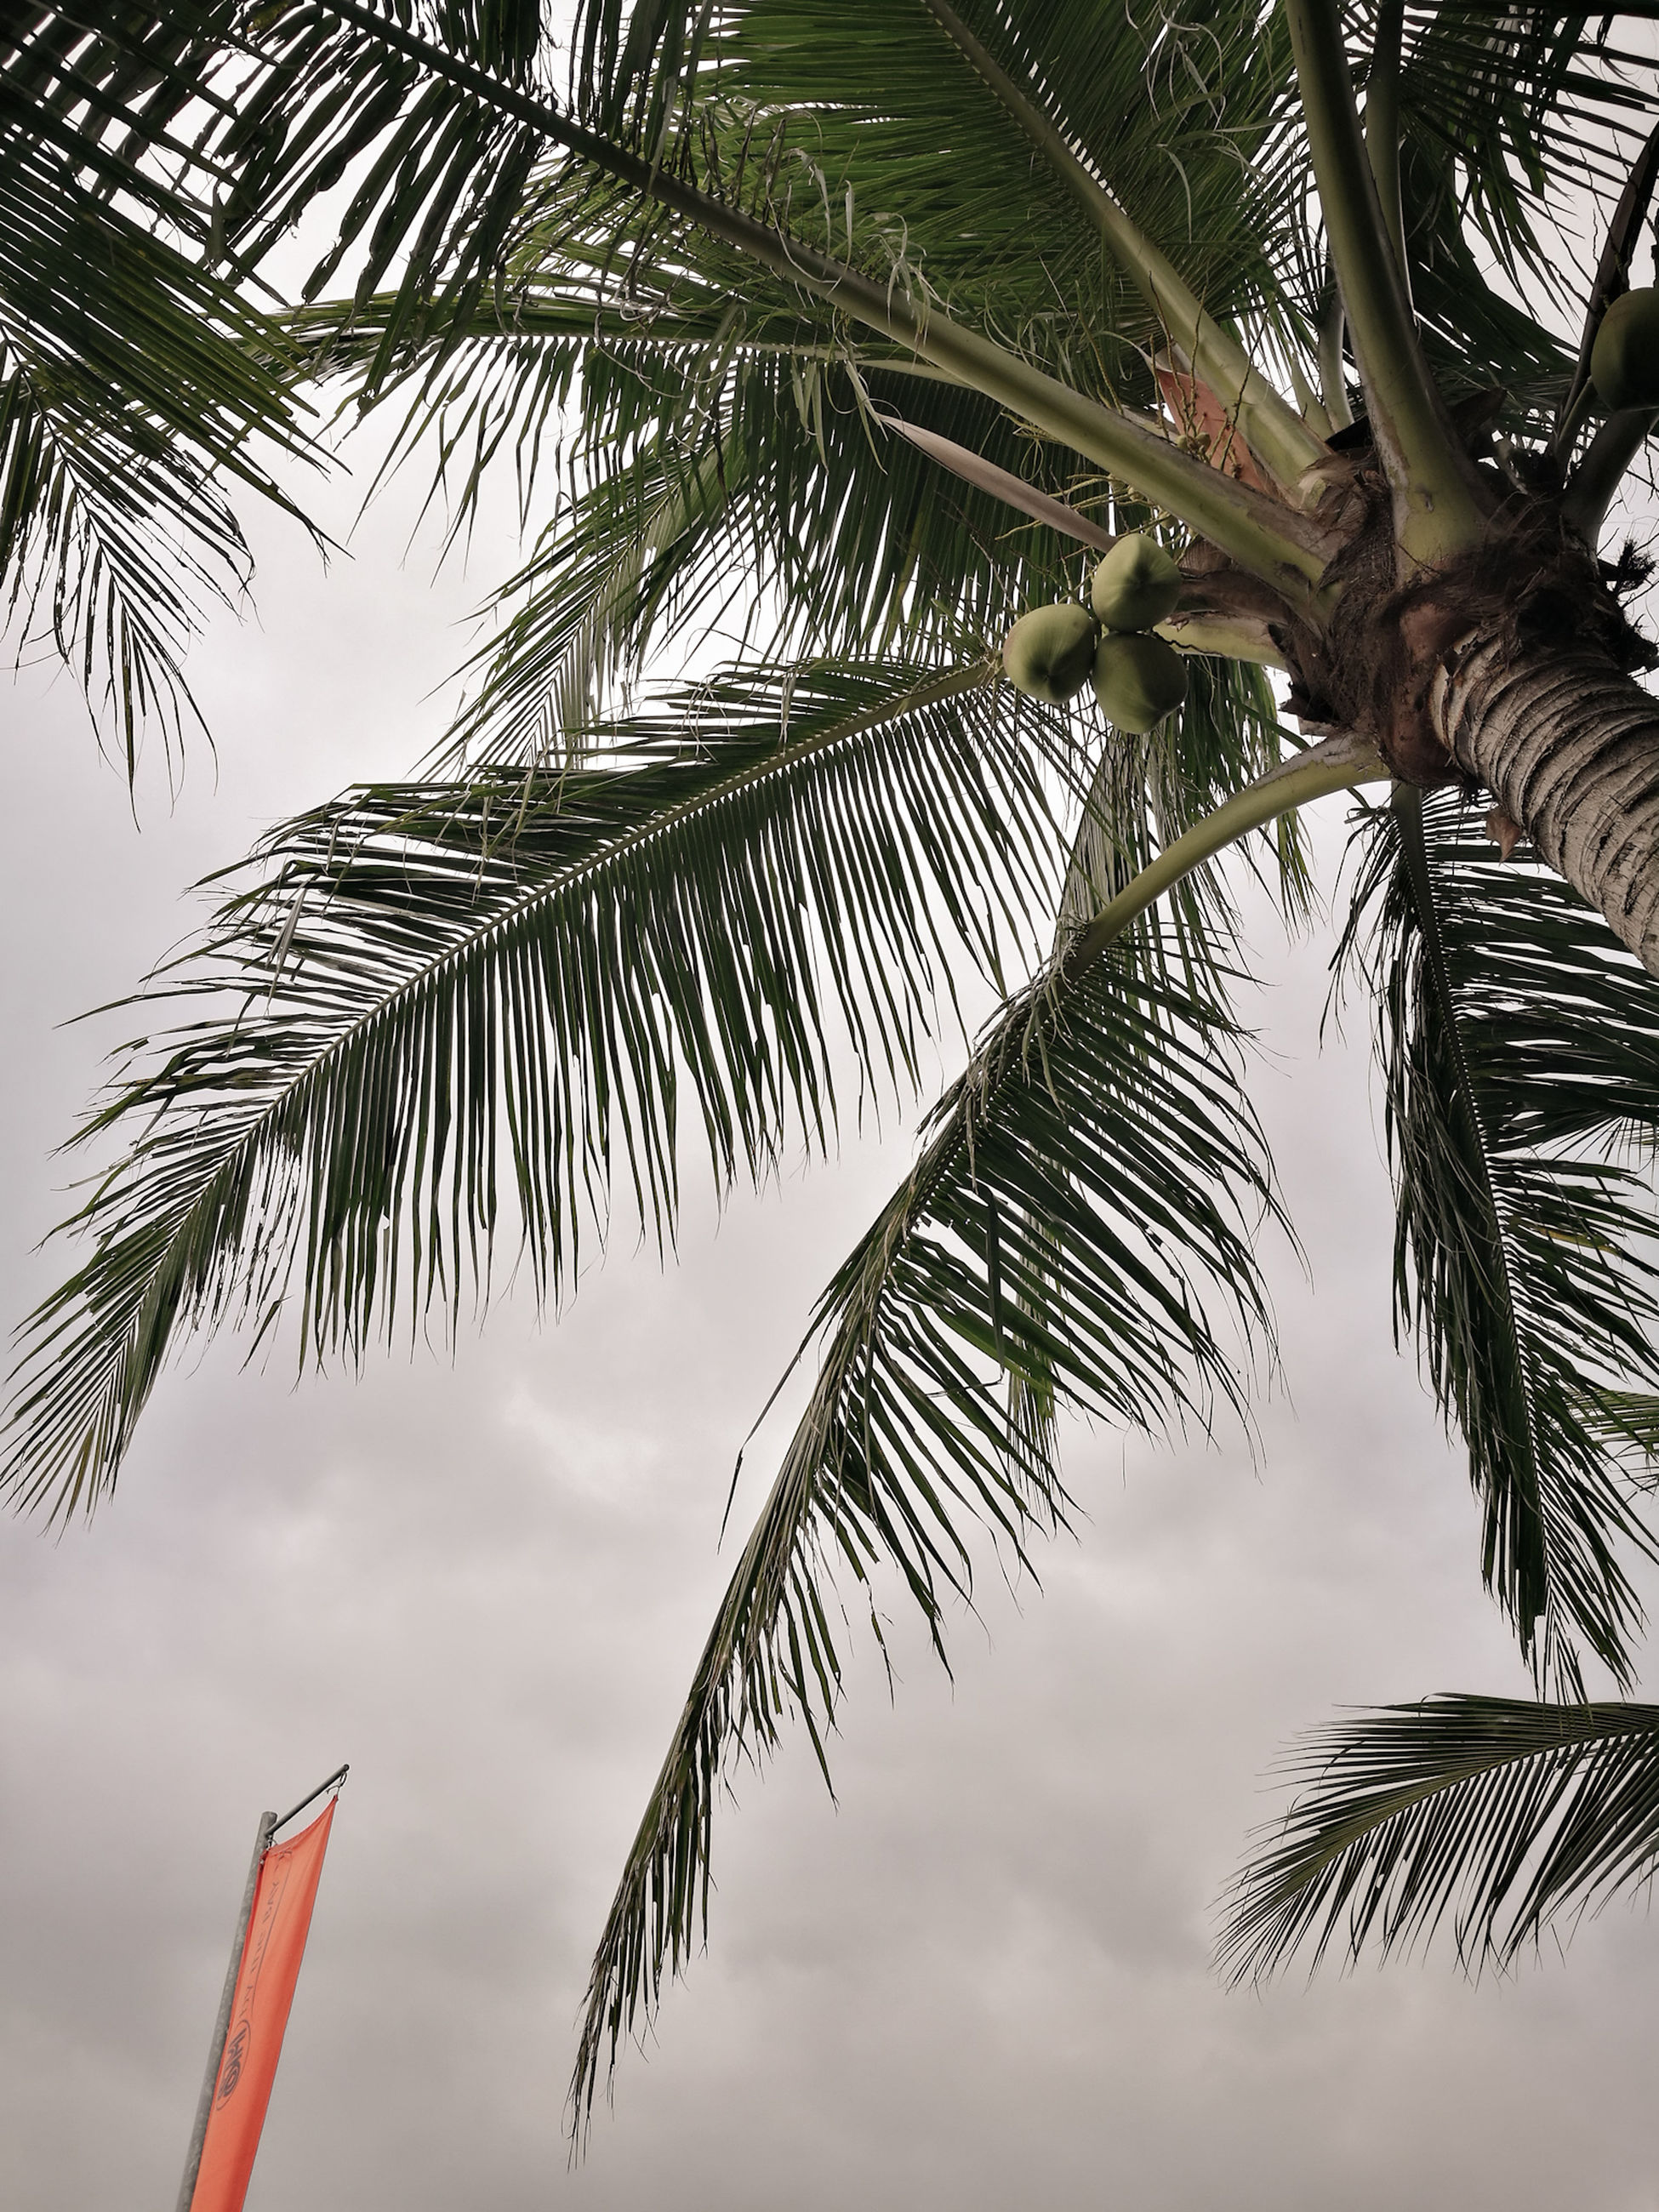 tree, tropical climate, palm tree, plant, sky, palm leaf, growth, low angle view, leaf, nature, no people, cloud - sky, beauty in nature, day, tranquility, branch, outdoors, plant part, tree trunk, trunk, coconut palm tree, tropical tree